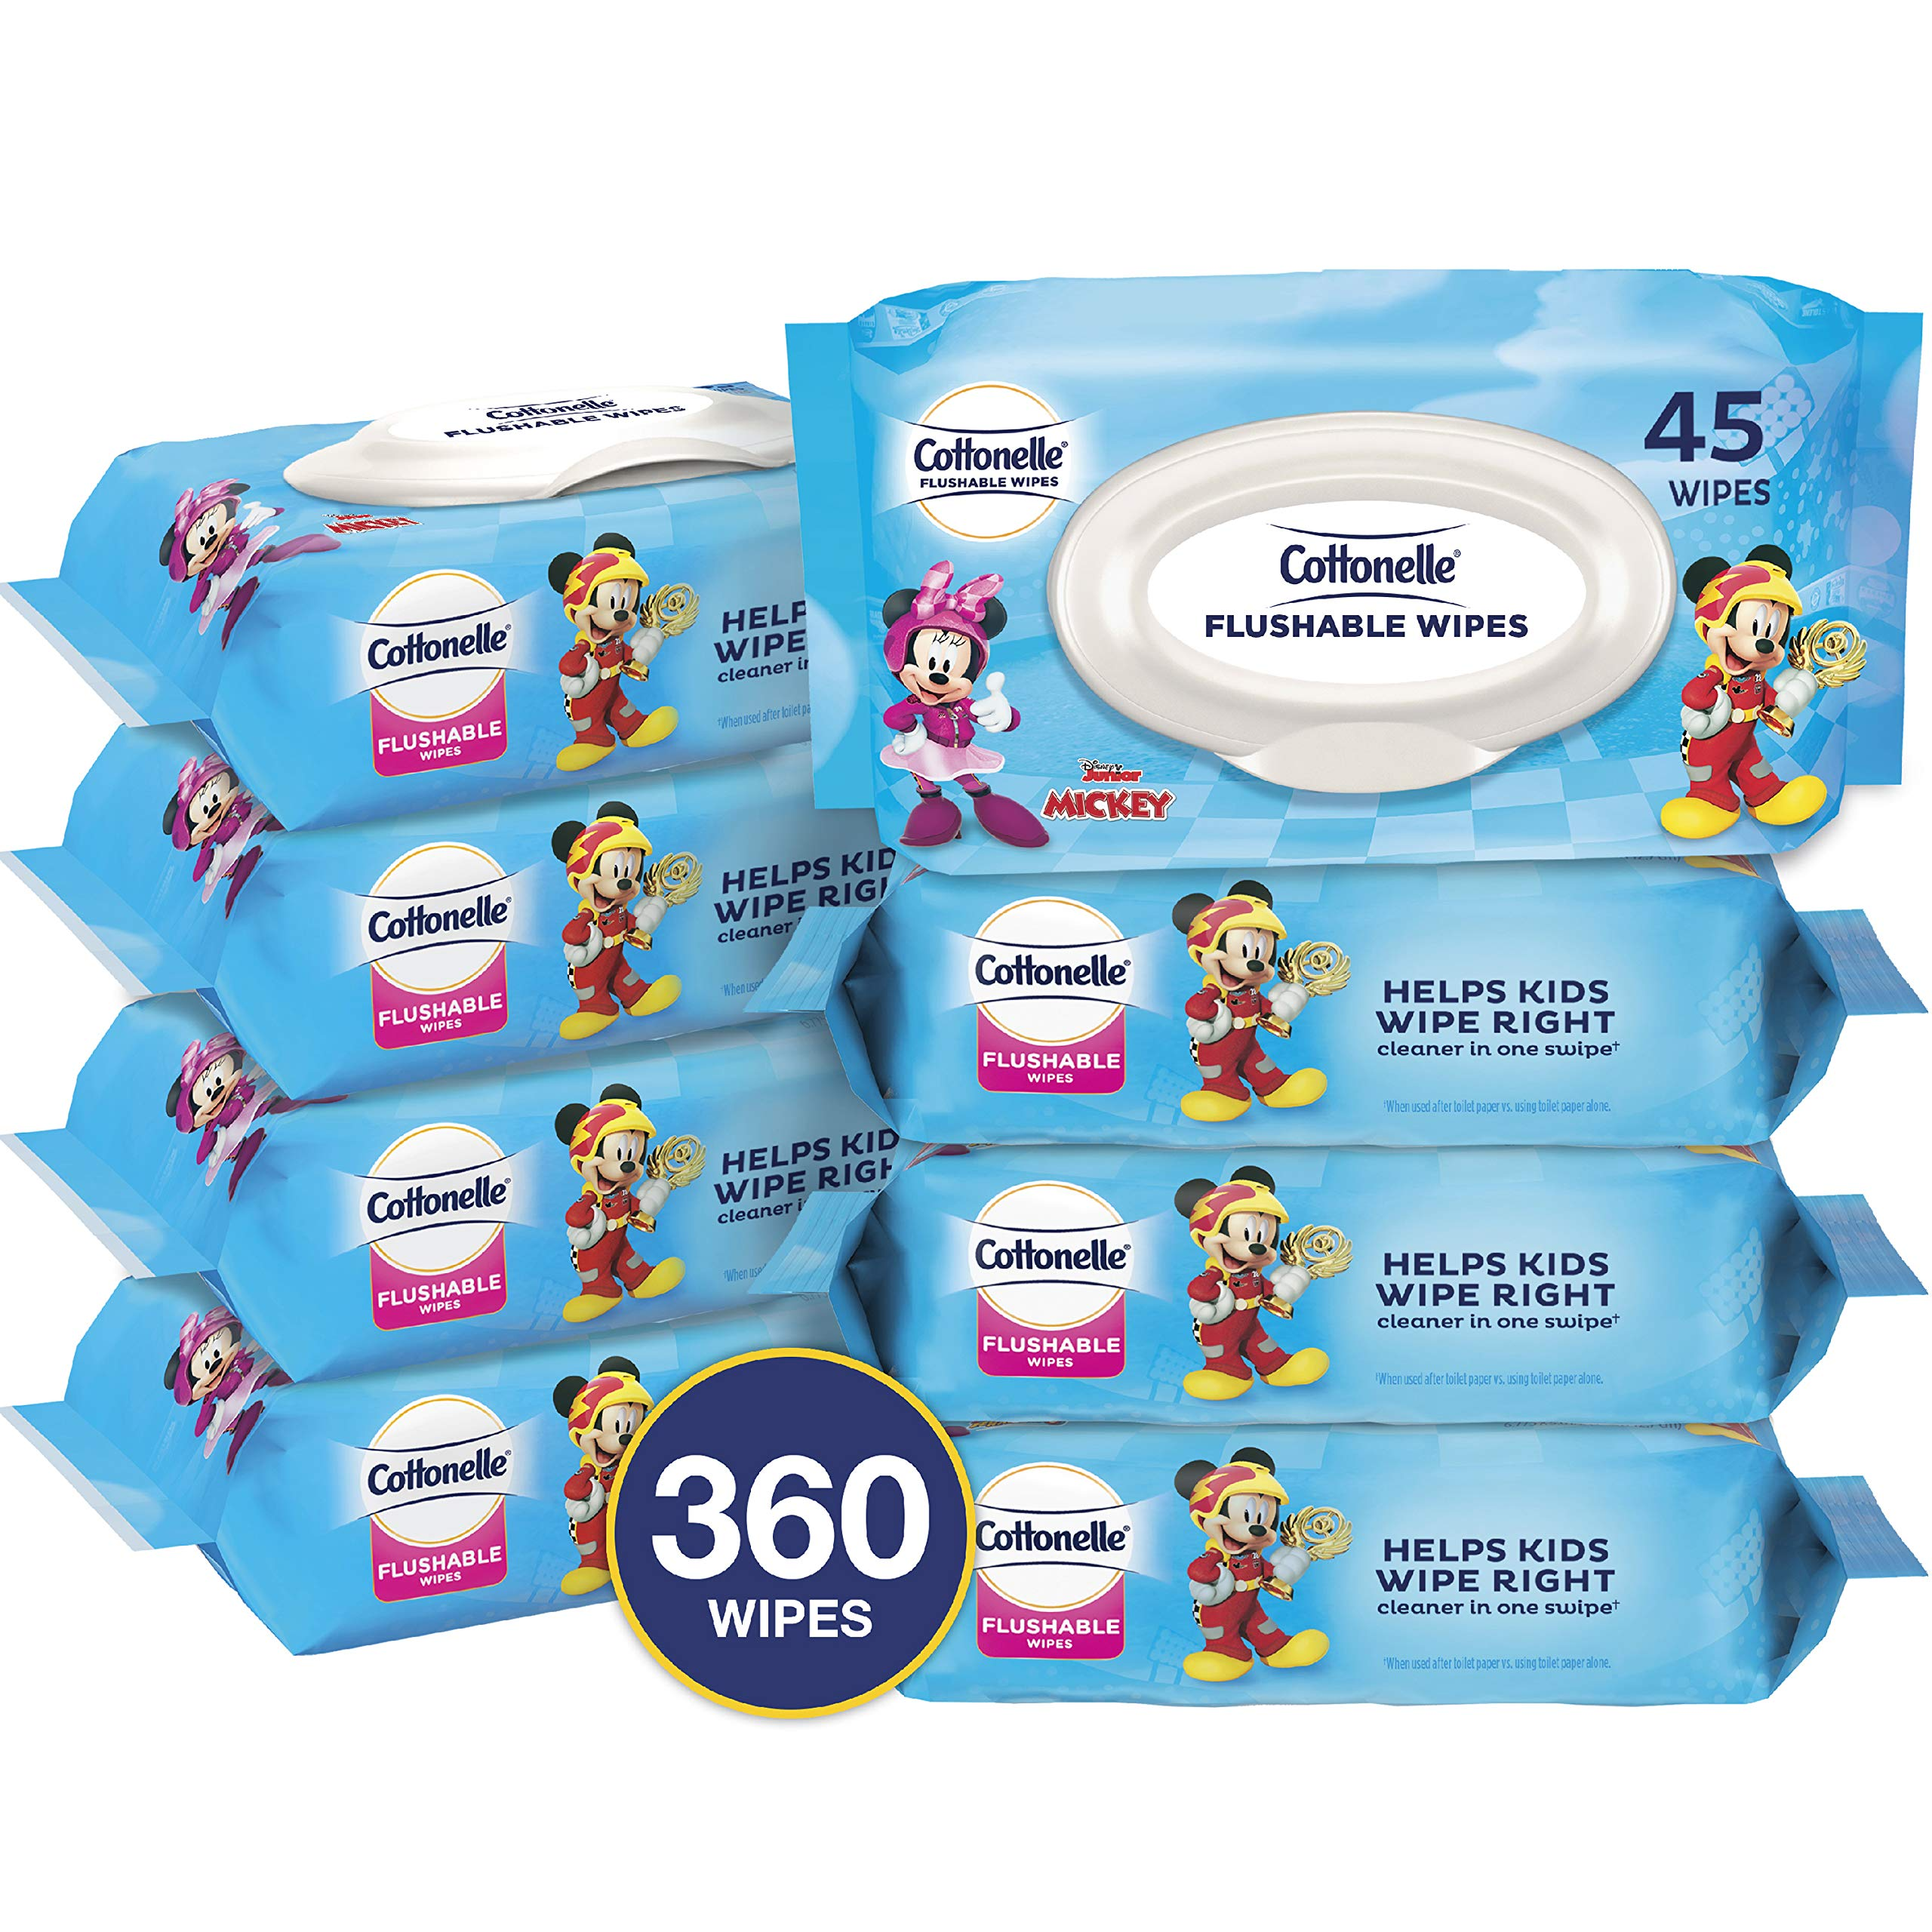 Cottonelle Flushable Toddler Wipes for Kids, 8 Flip-Top Packs, 360 Fragrance-Free Wet Wipes in Disney Packaging, Mickey Mouse by Cottonelle